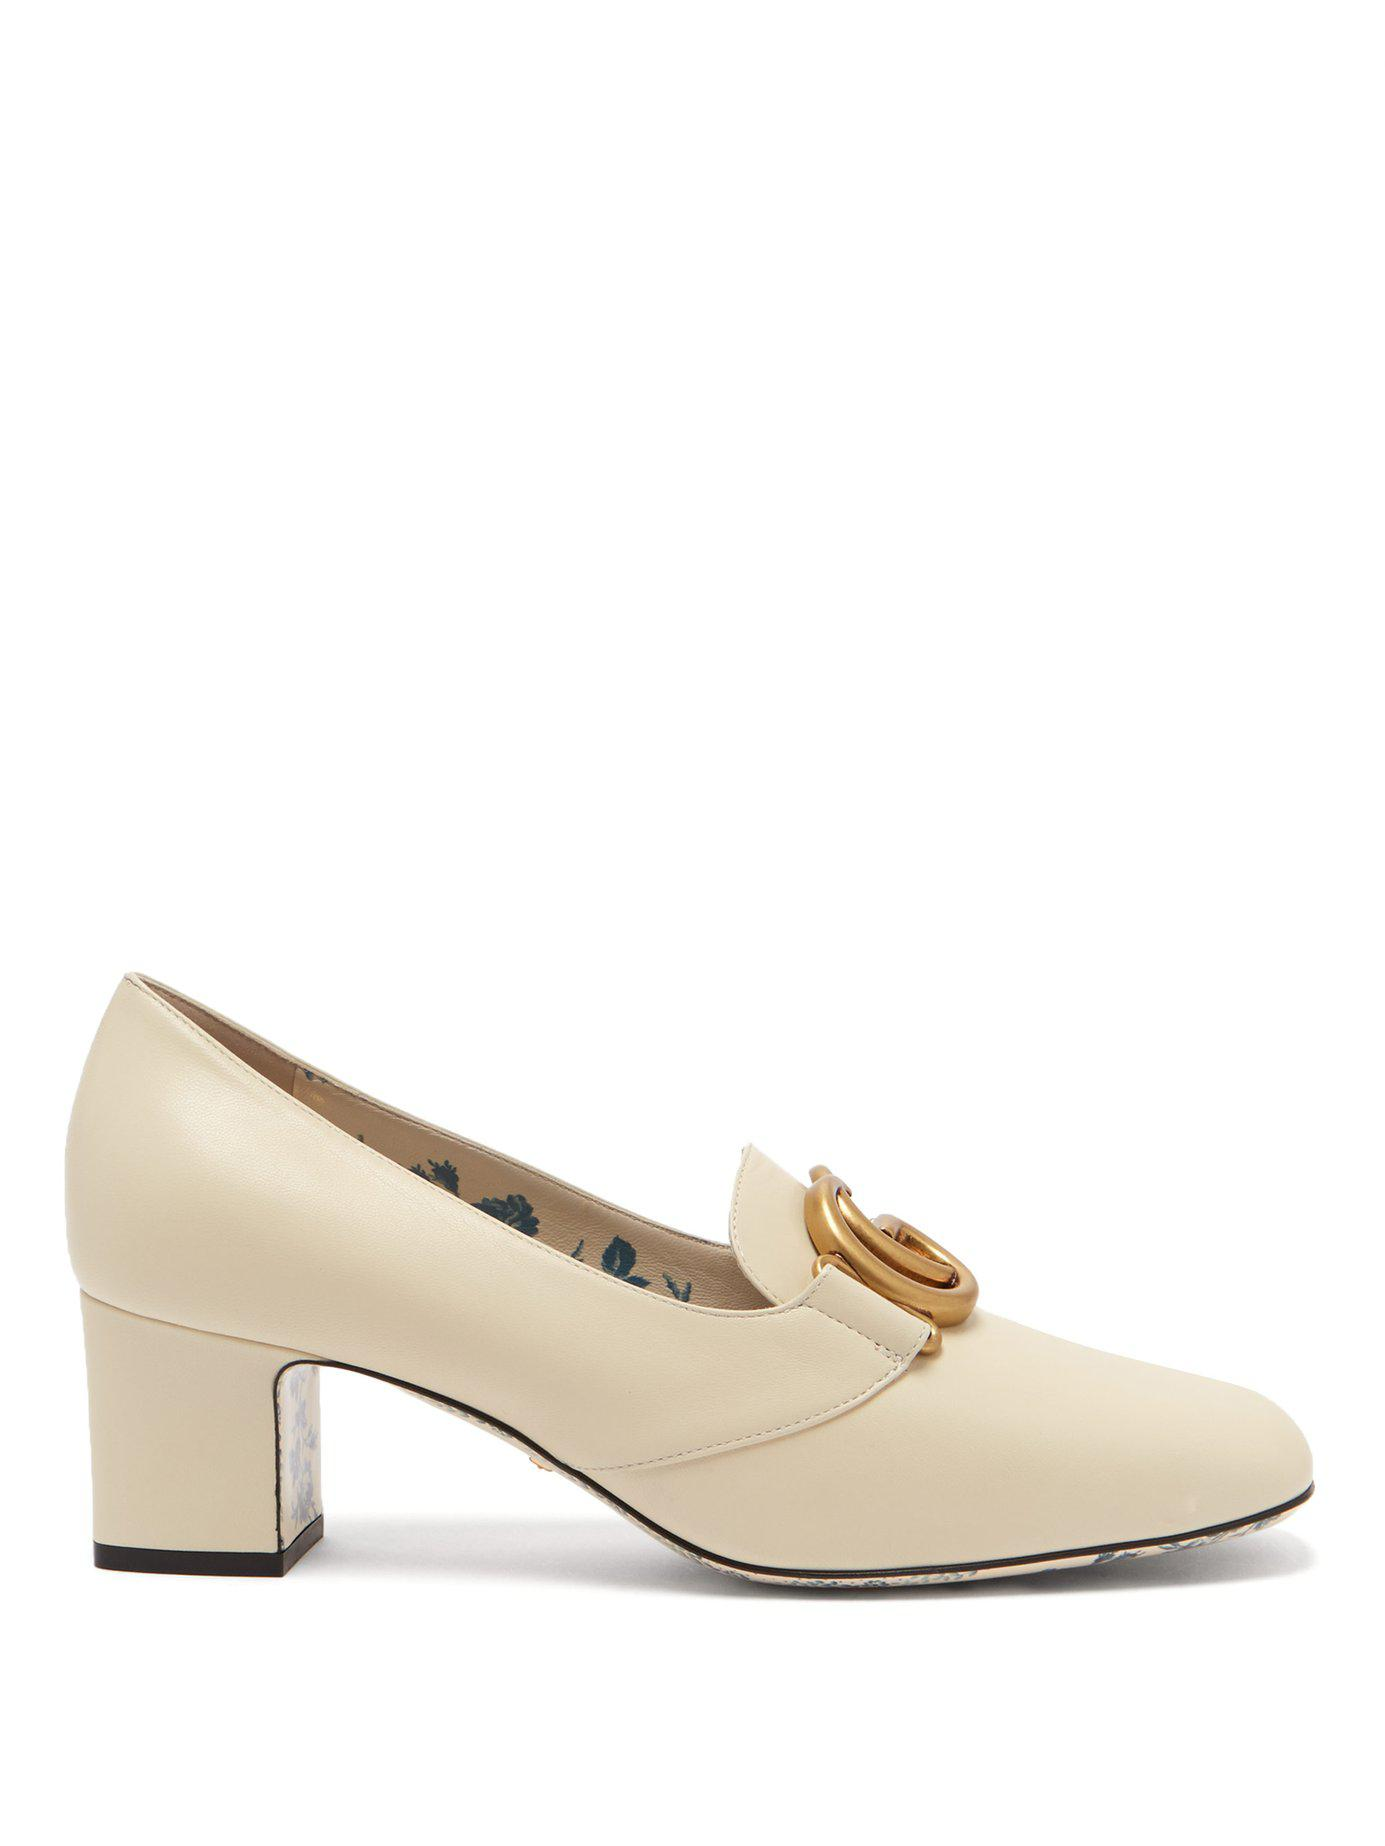 378c65c76fd Lyst - Gucci Gg Marmont Leather Block Heel Loafers in White